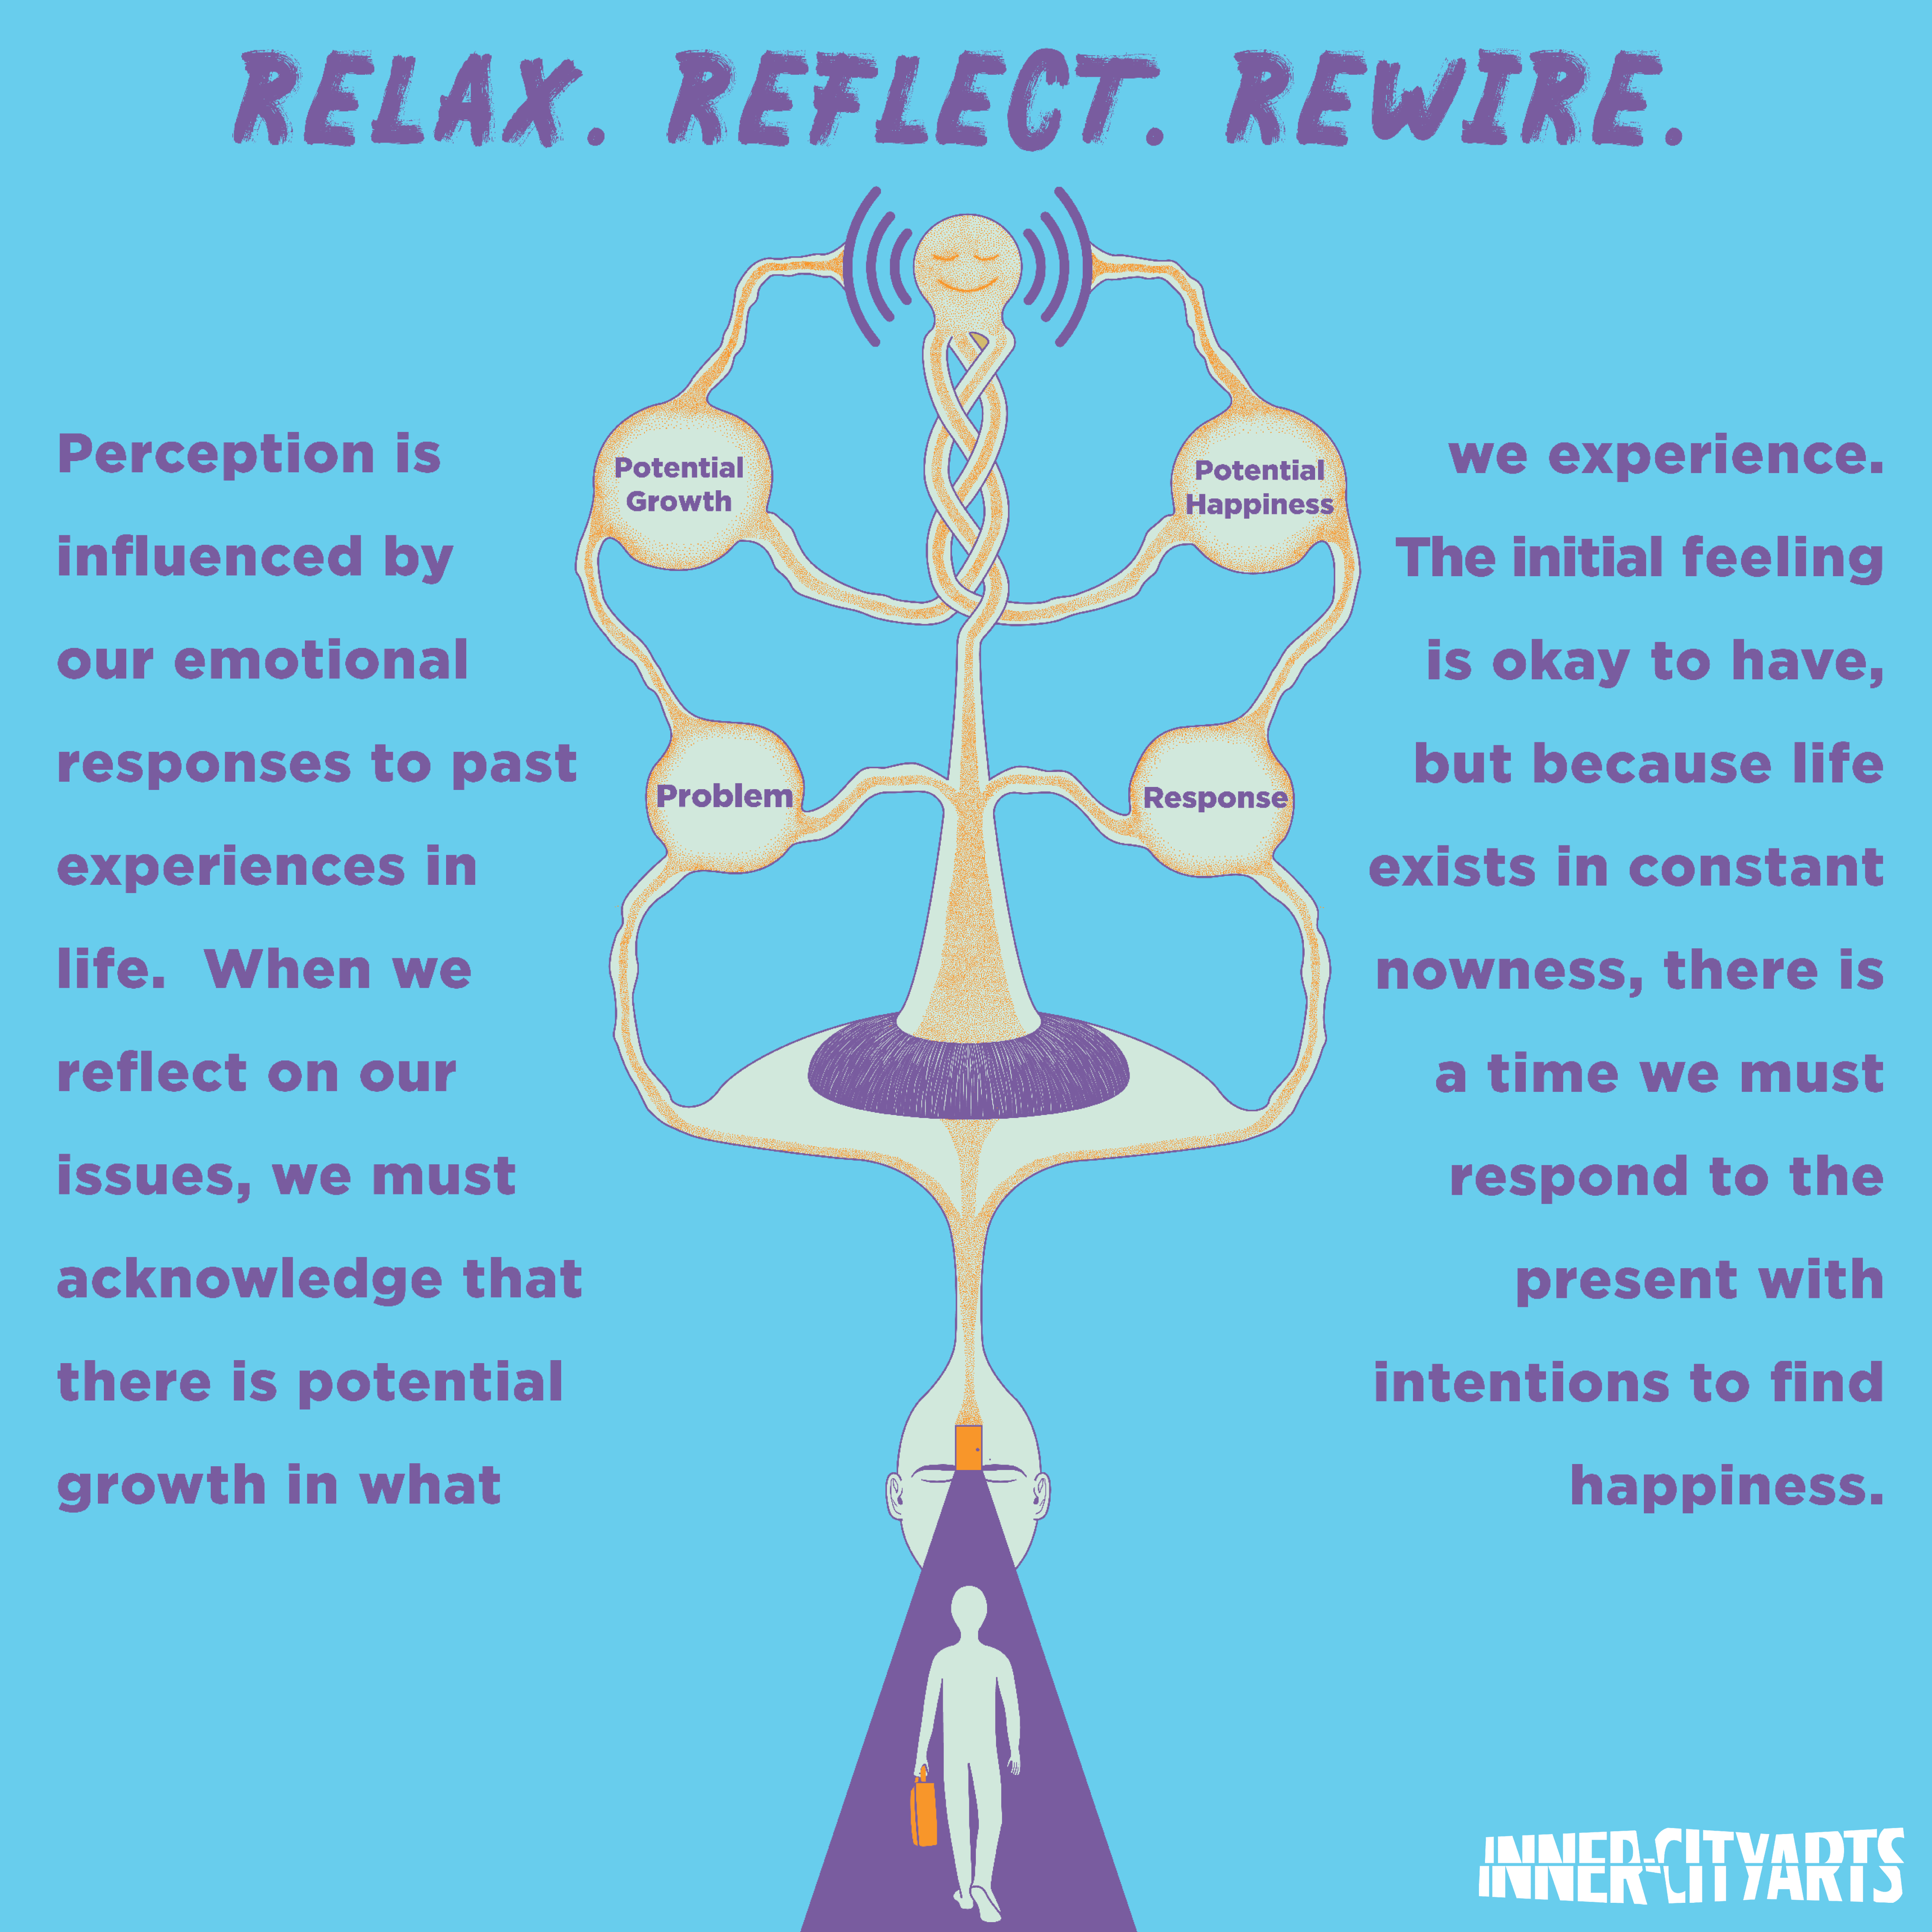 SOCIAL_PSA_AnxietyandDepression_RelaxReflectRewire_1x1_FINAL_logo